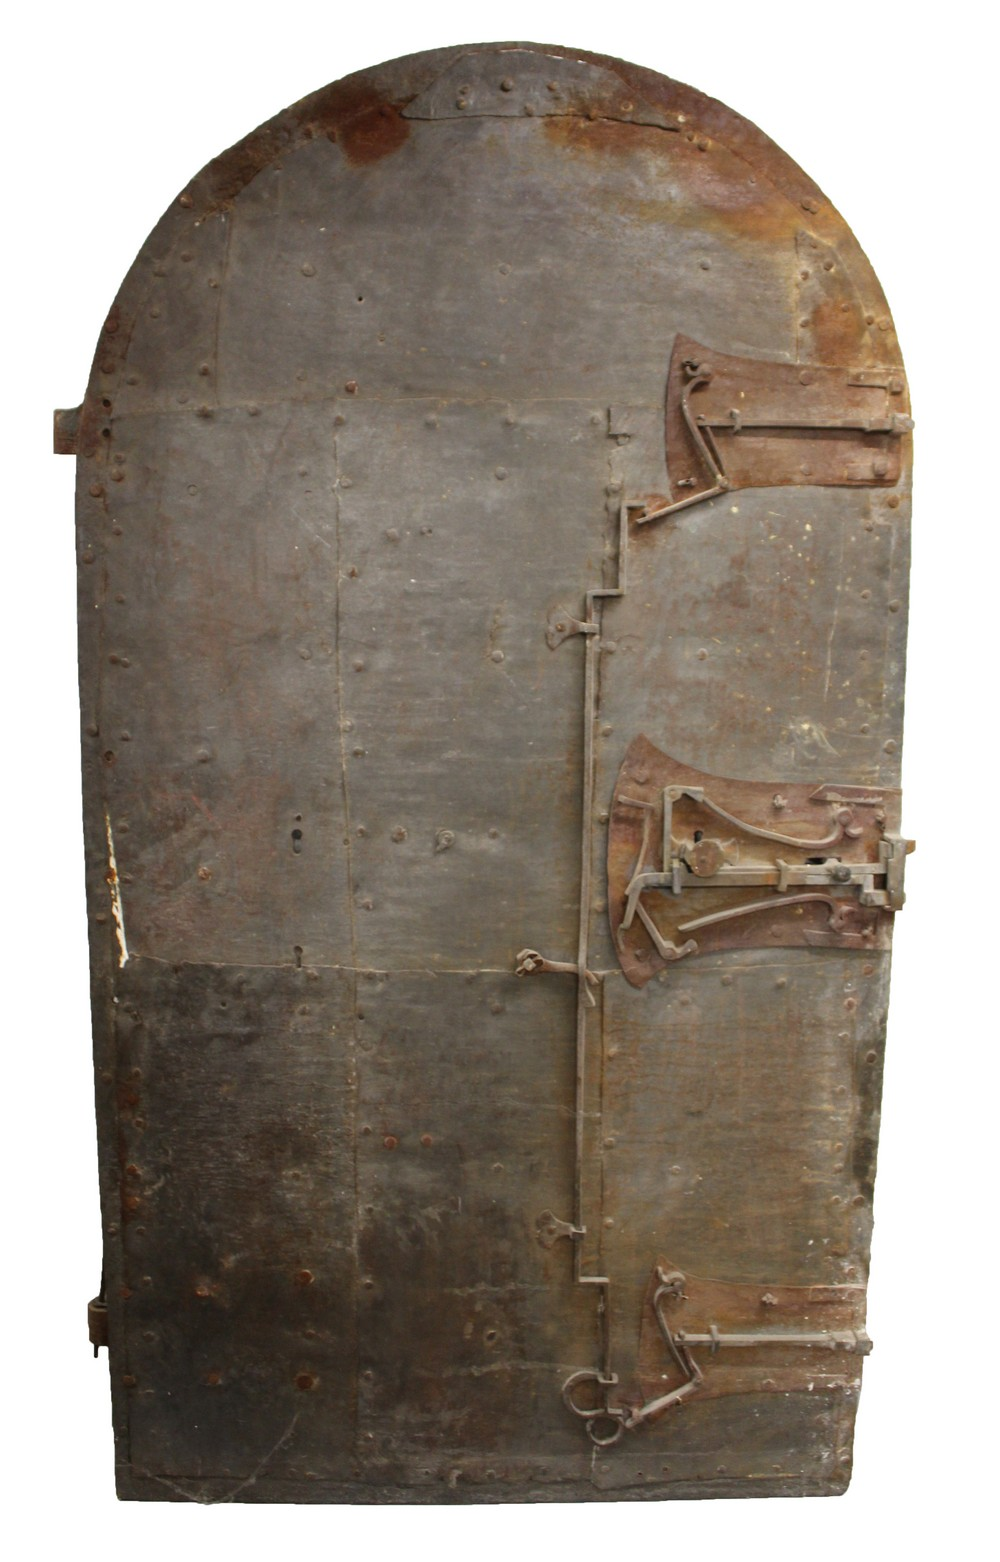 Lot 1014 - A VERY EARLY 14TH-15TH CENTURY CAST IRON DOOR, probably GERMAN, with a three action bolt lock. 6ft